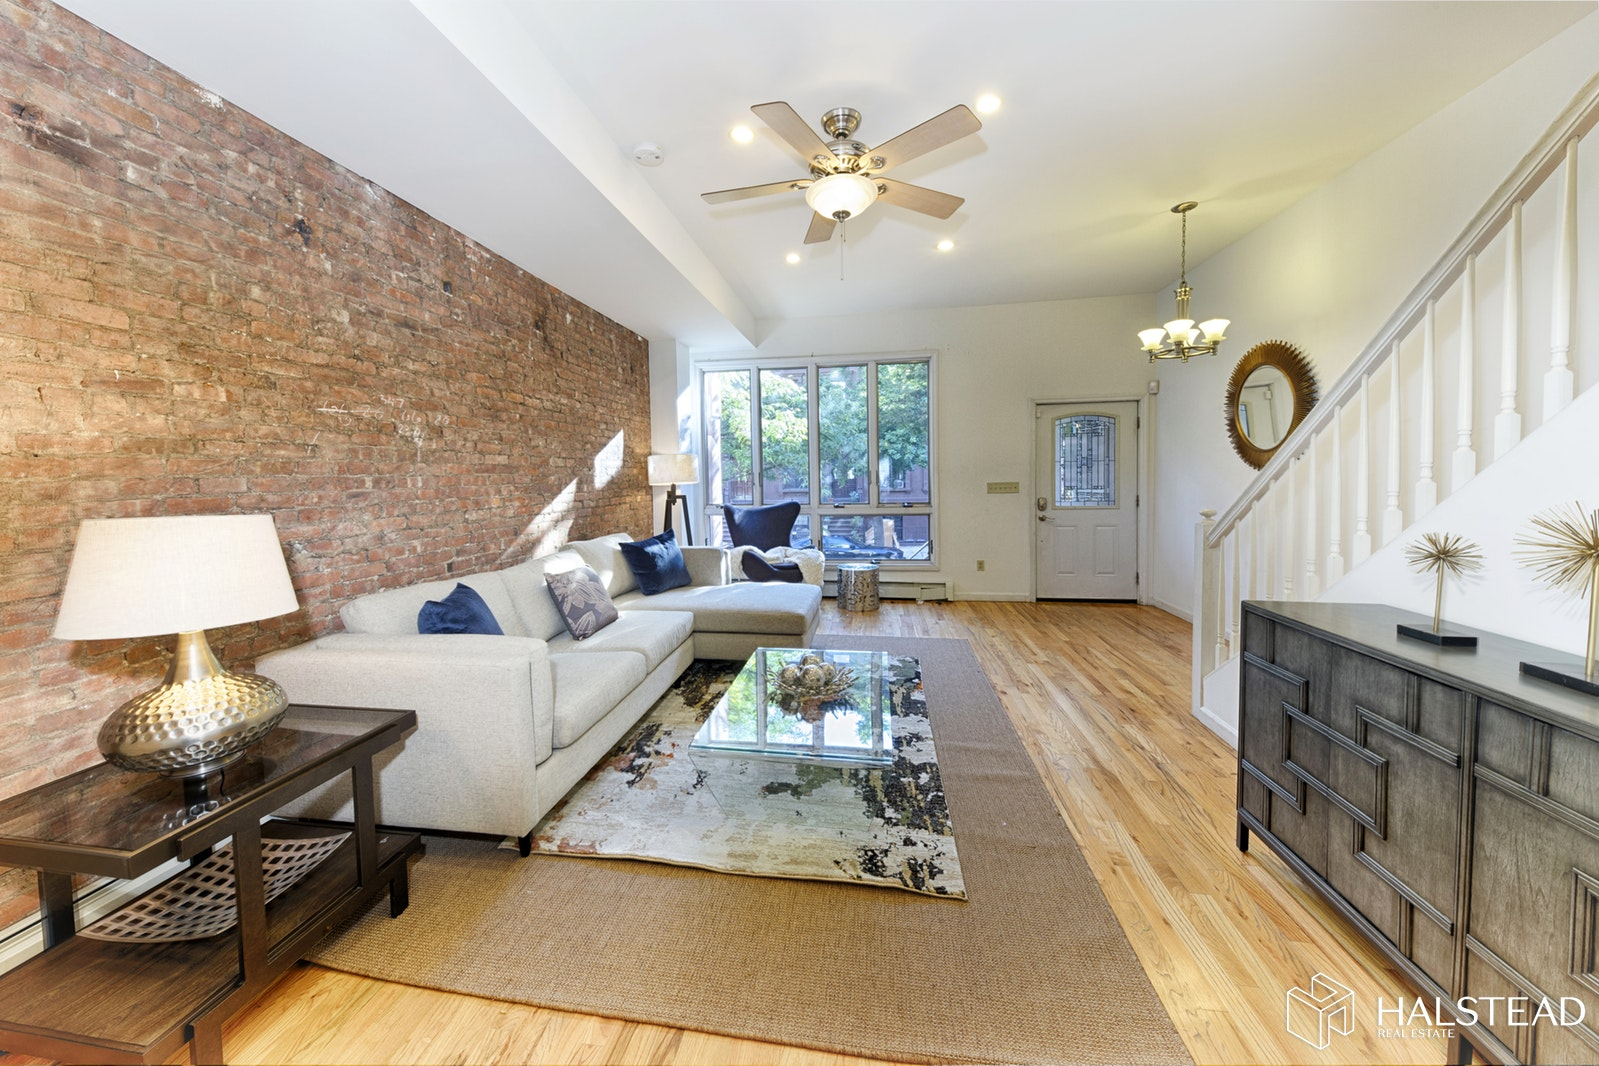 117 West 131st Street, Upper Manhattan, NYC, 10027, $2,500,000, Property For Sale, Halstead Real Estate, Photo 1